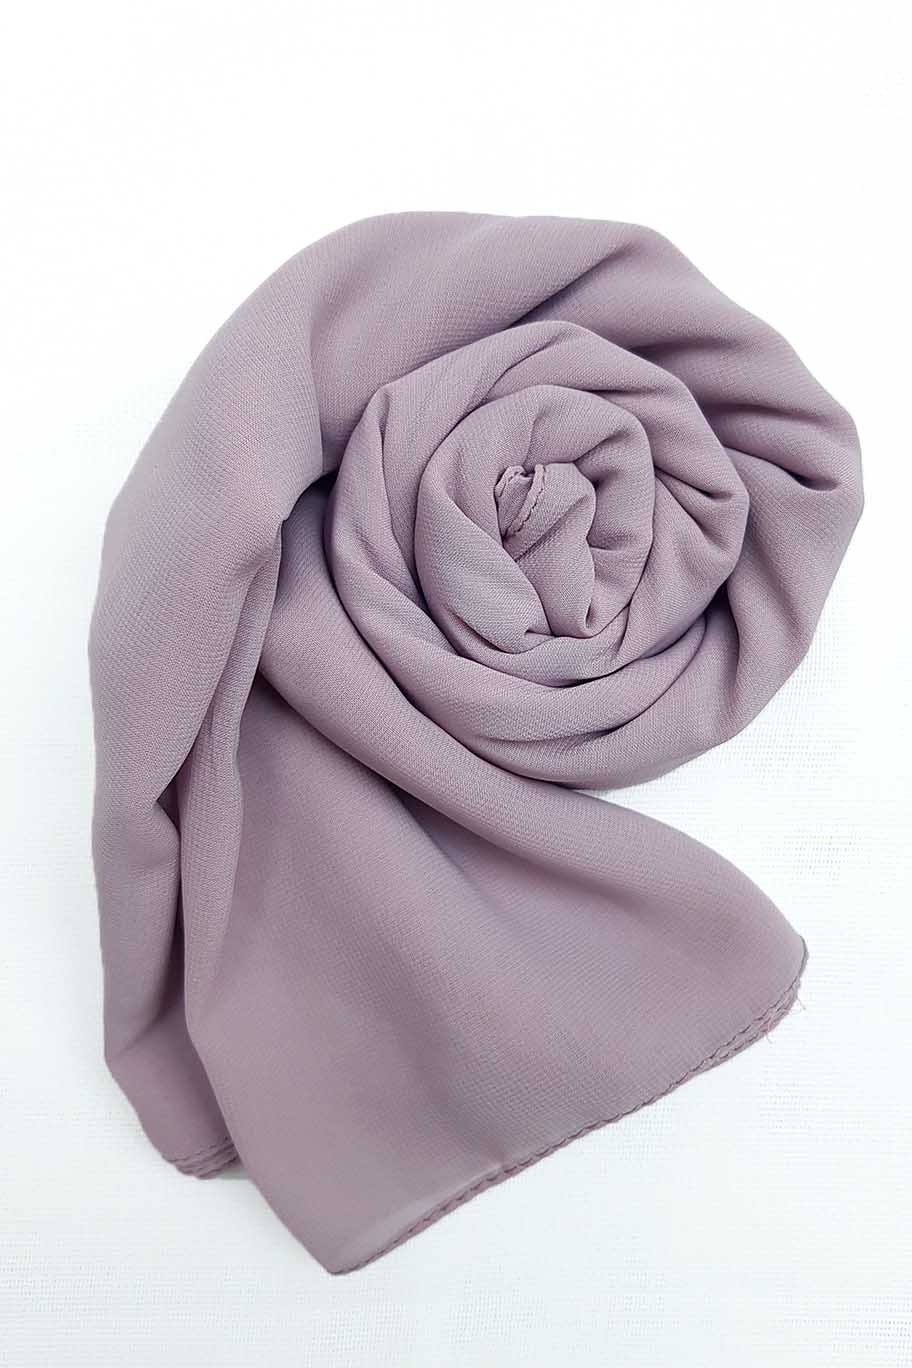 Light Lilac Chiffon Hijab - Chiffon Hijab - The Modest Look